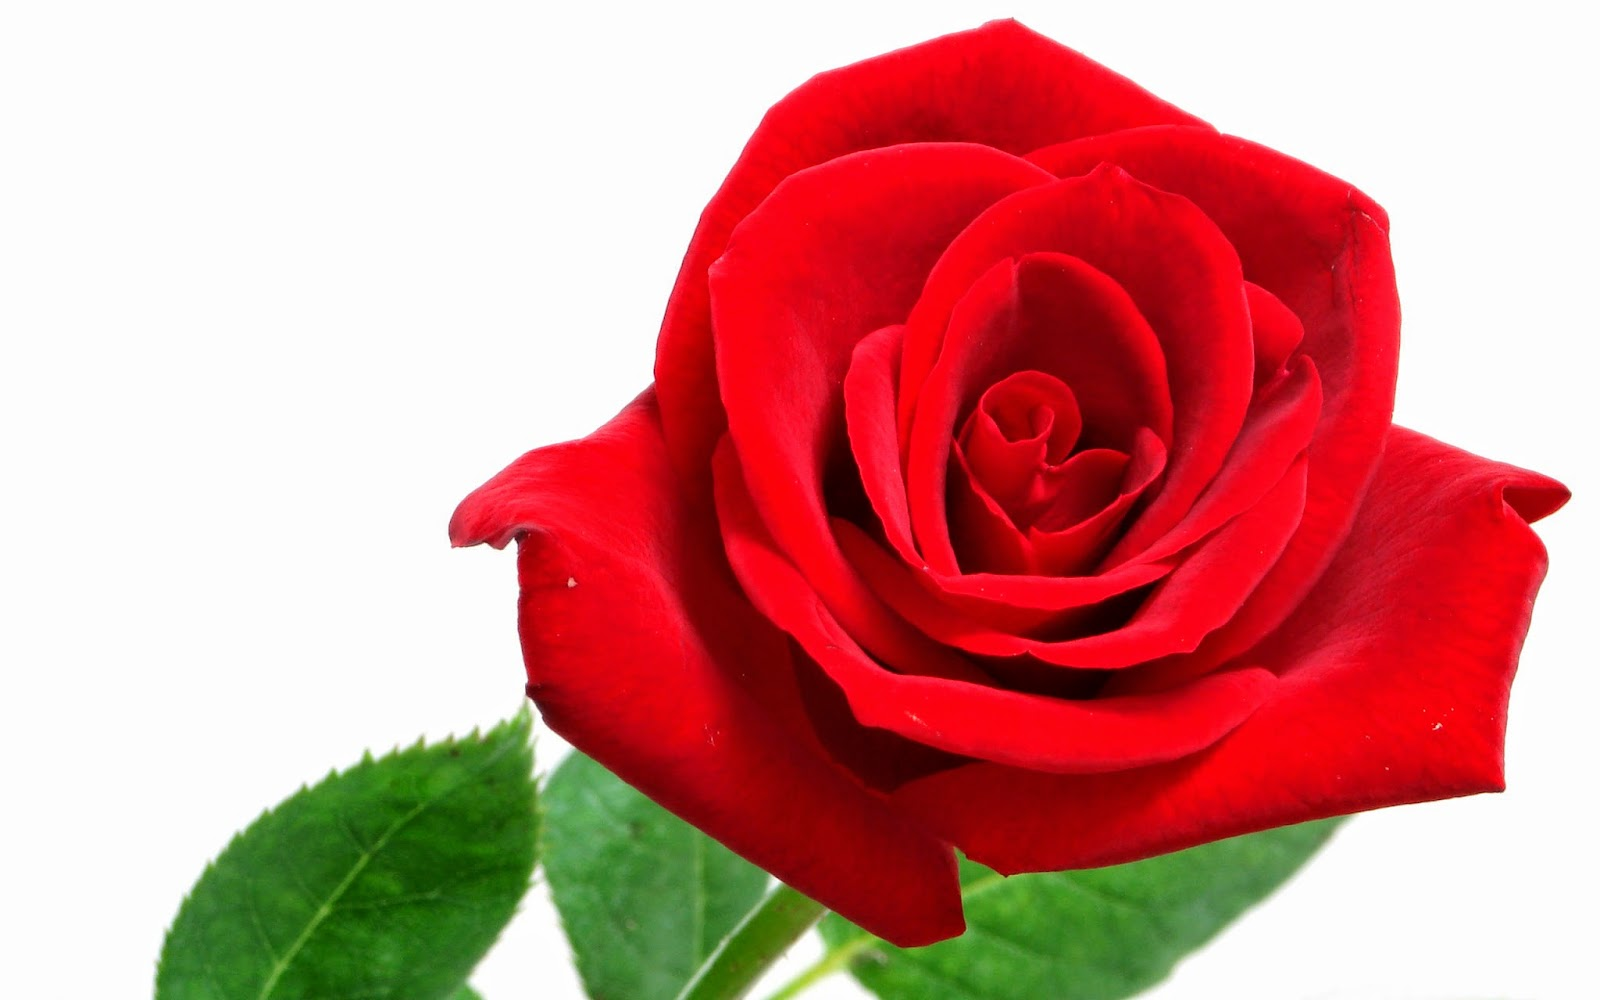 Red rose hd wallpapers for wide desktop laptop screen - Red rose flower hd images ...